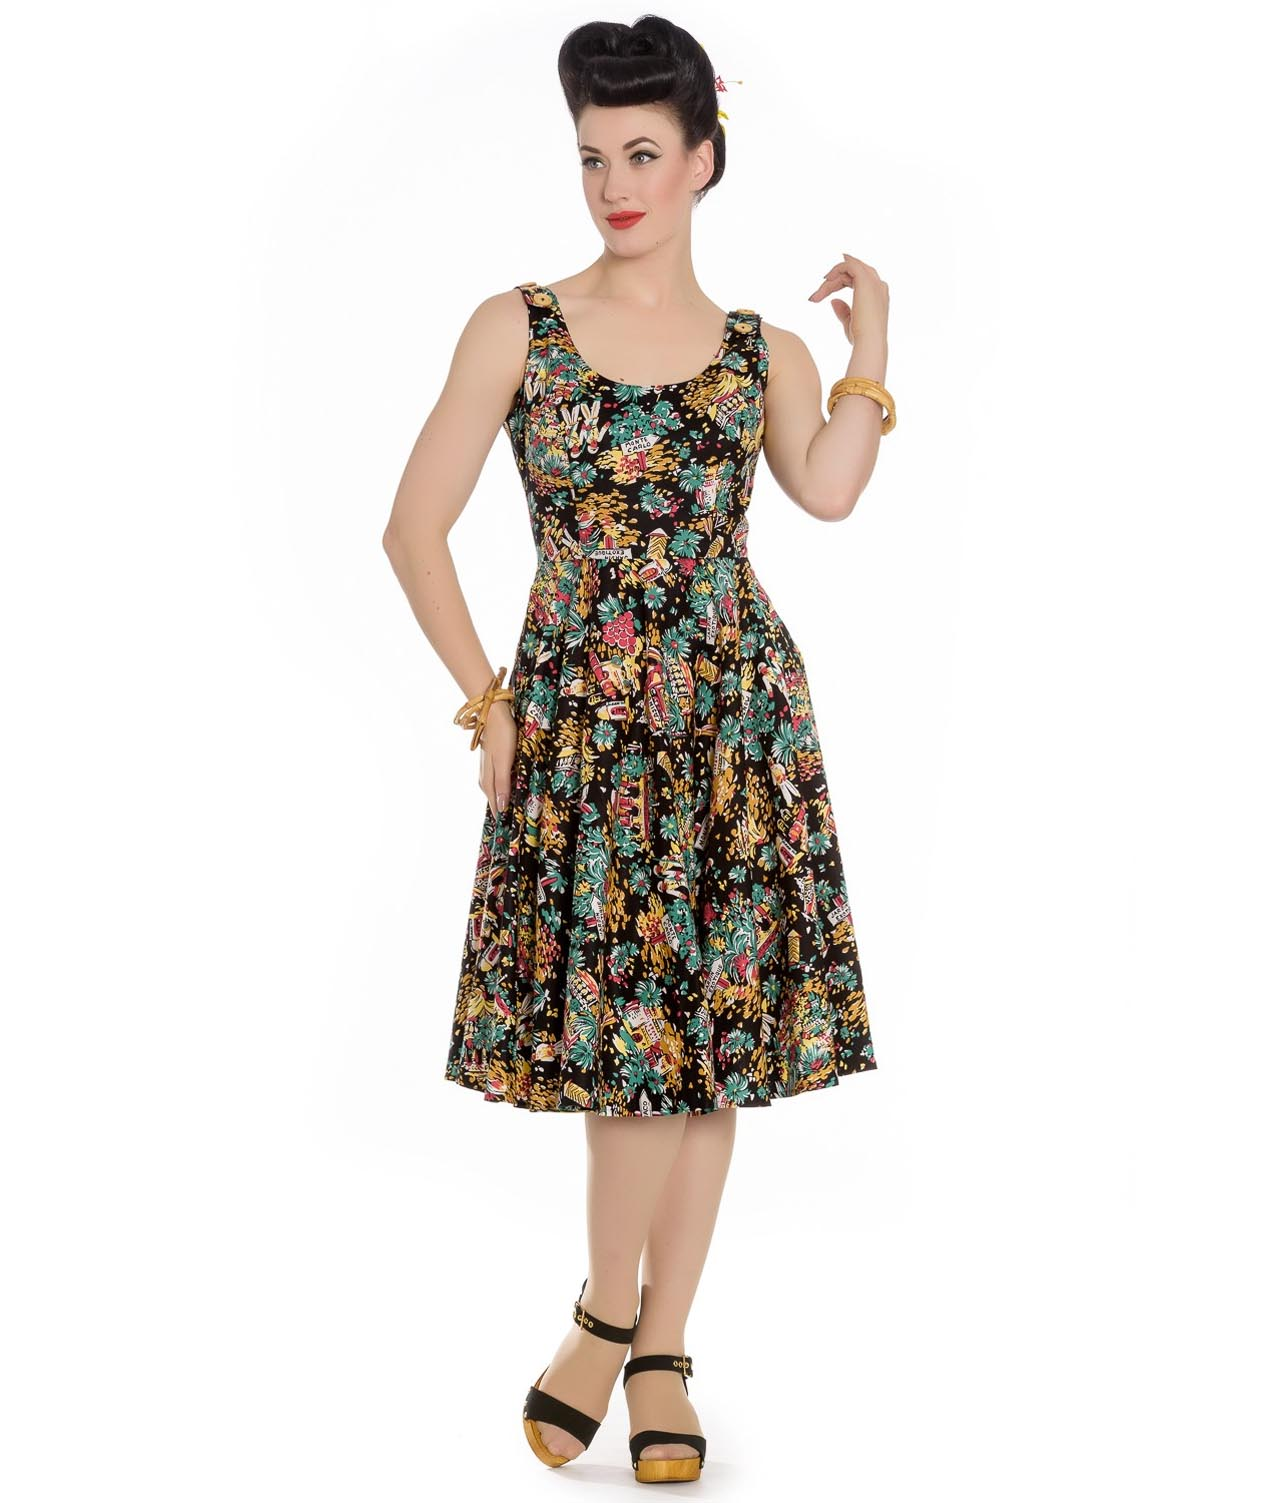 Hell-Bunny-Summer-50s-Black-Dress-MONTE-CARLO-Tropical-Holiday-All-Sizes thumbnail 43